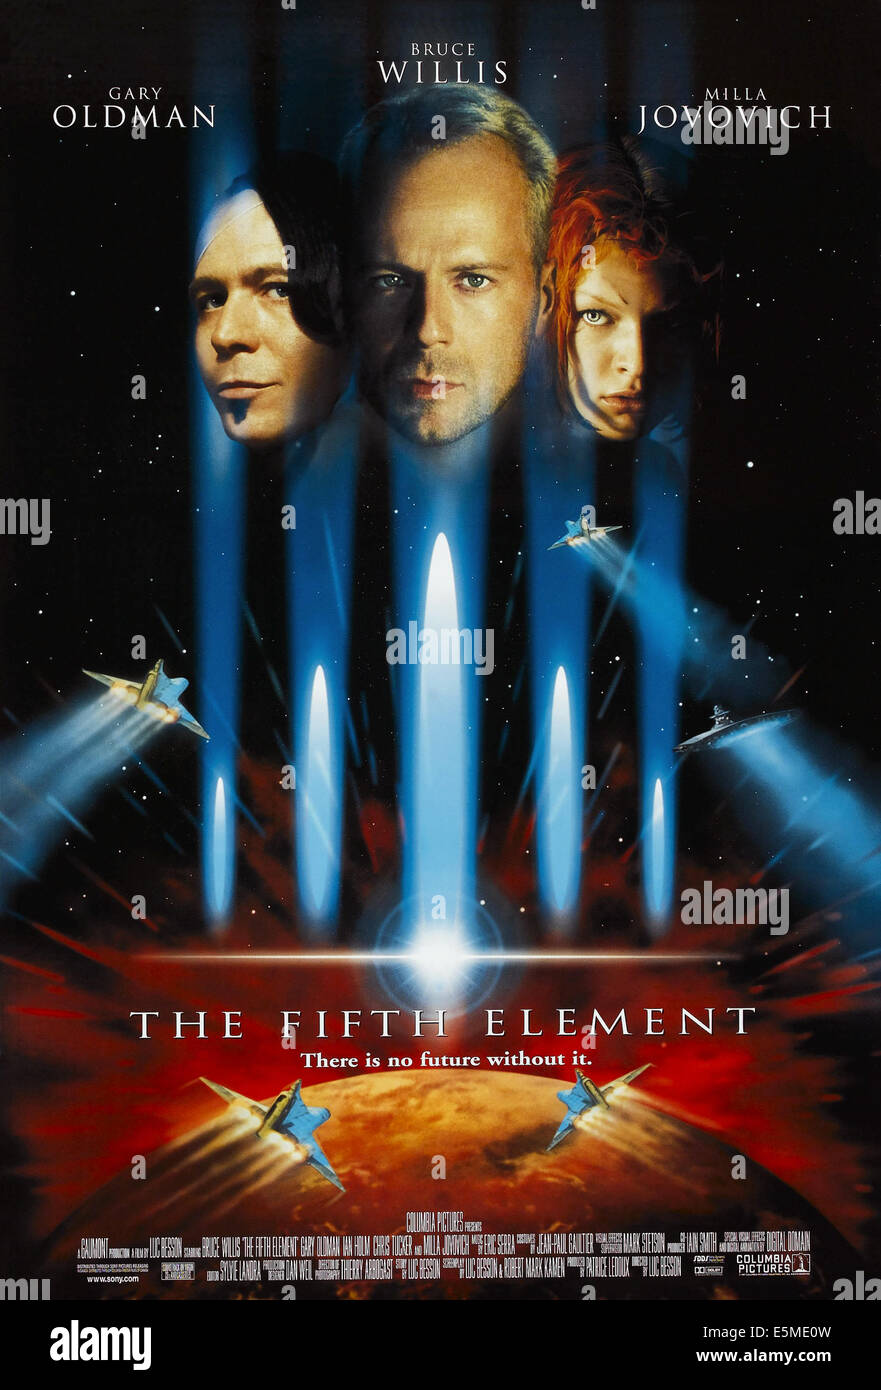 THE FIFTH ELEMENT, US poster, from left: Gary Oldman, Bruce Willis, Milla Jovovich, 1997. © Columbia/courtesy - Stock Image